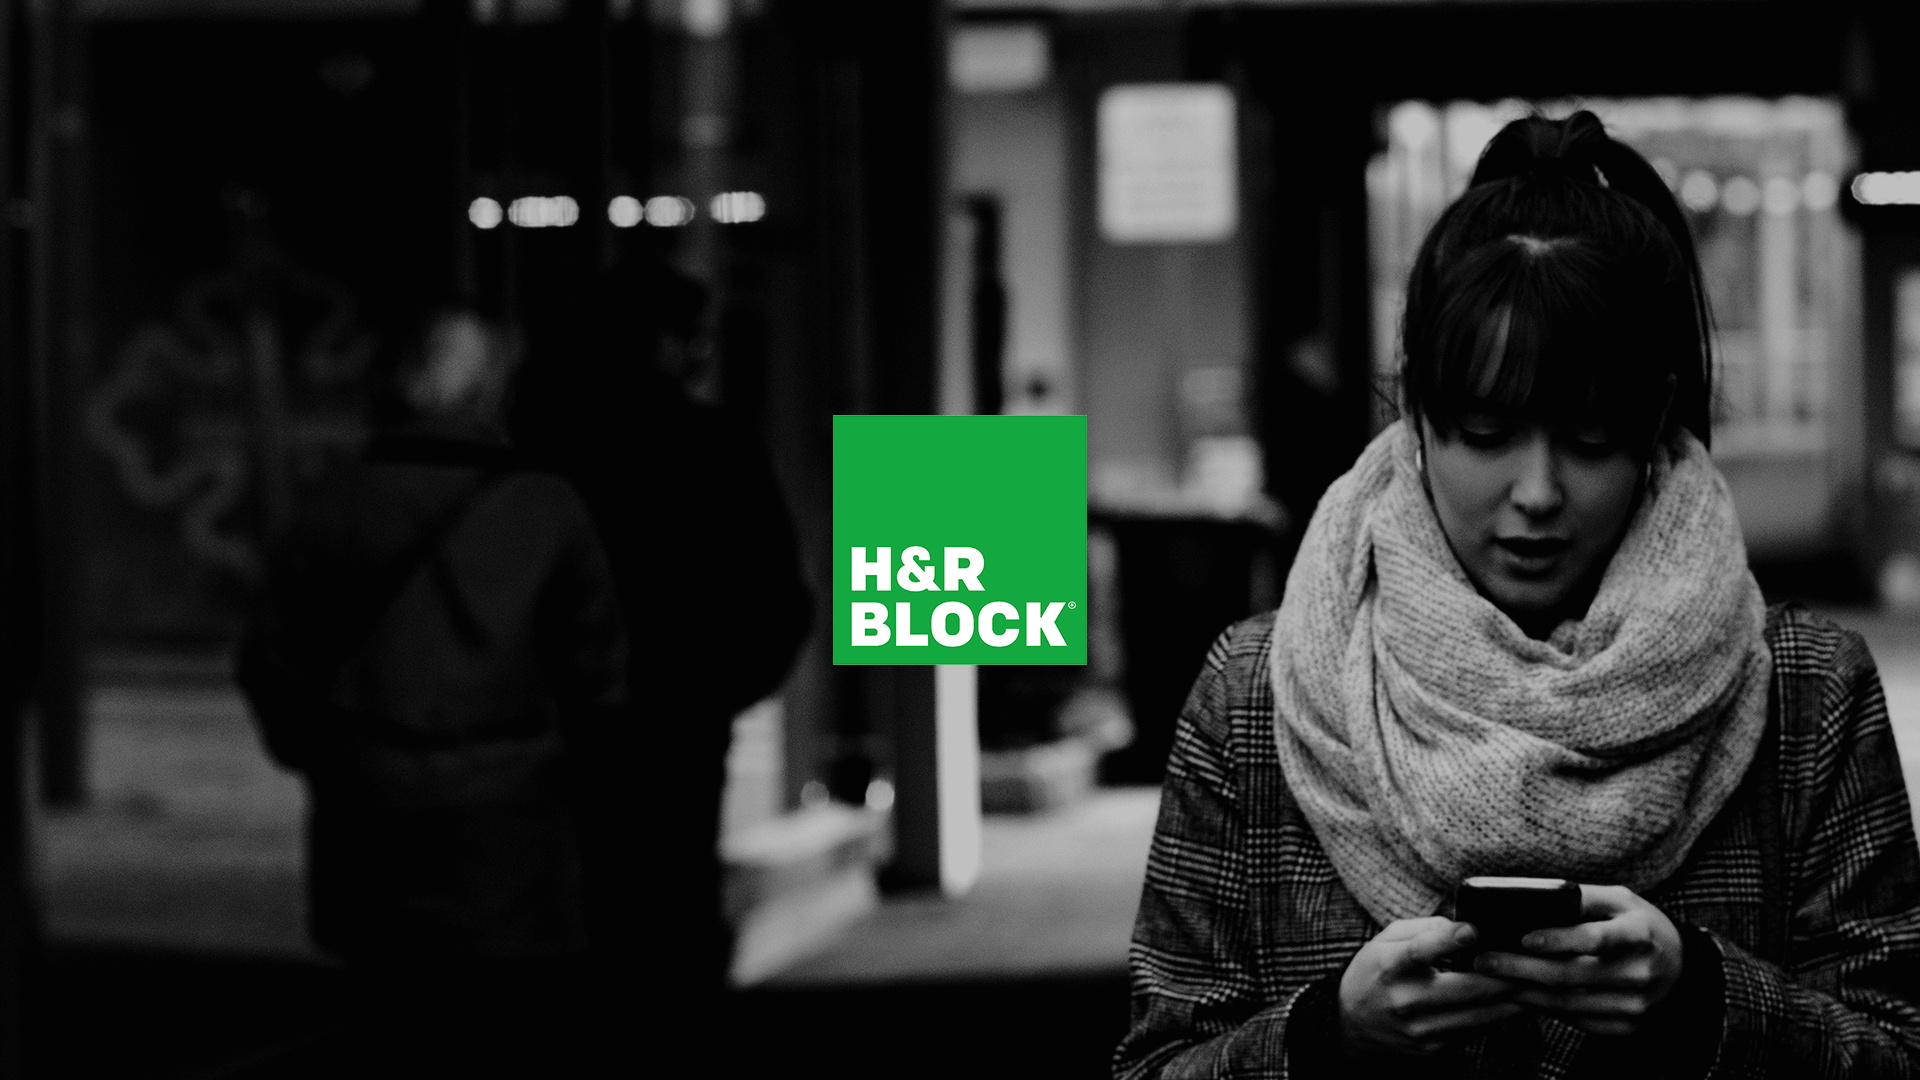 GALE named Digital, Media, and CRM Agency of Record for H&R Block